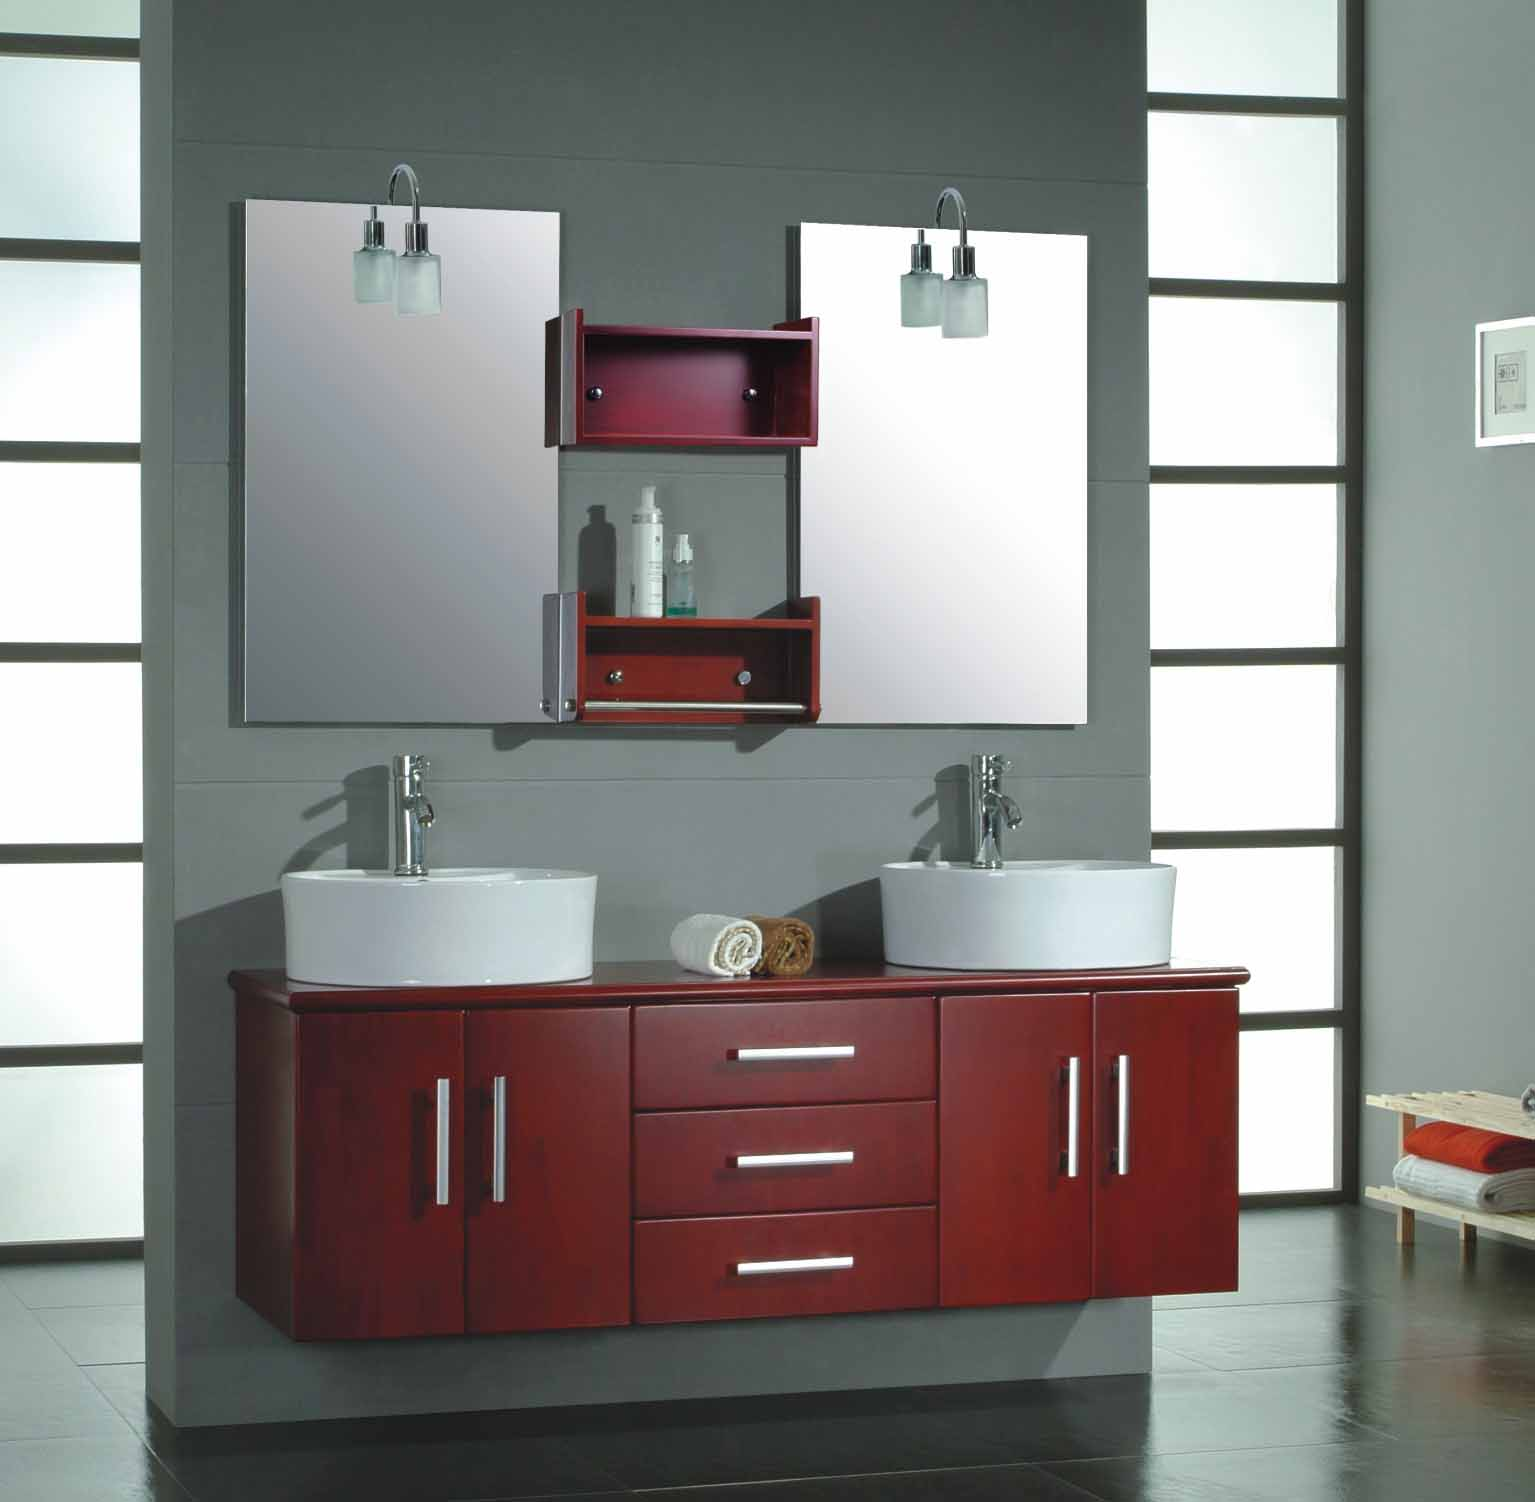 Interior Design Ideas Bathroom Furniture Choosing Furniture For Your Bathroom